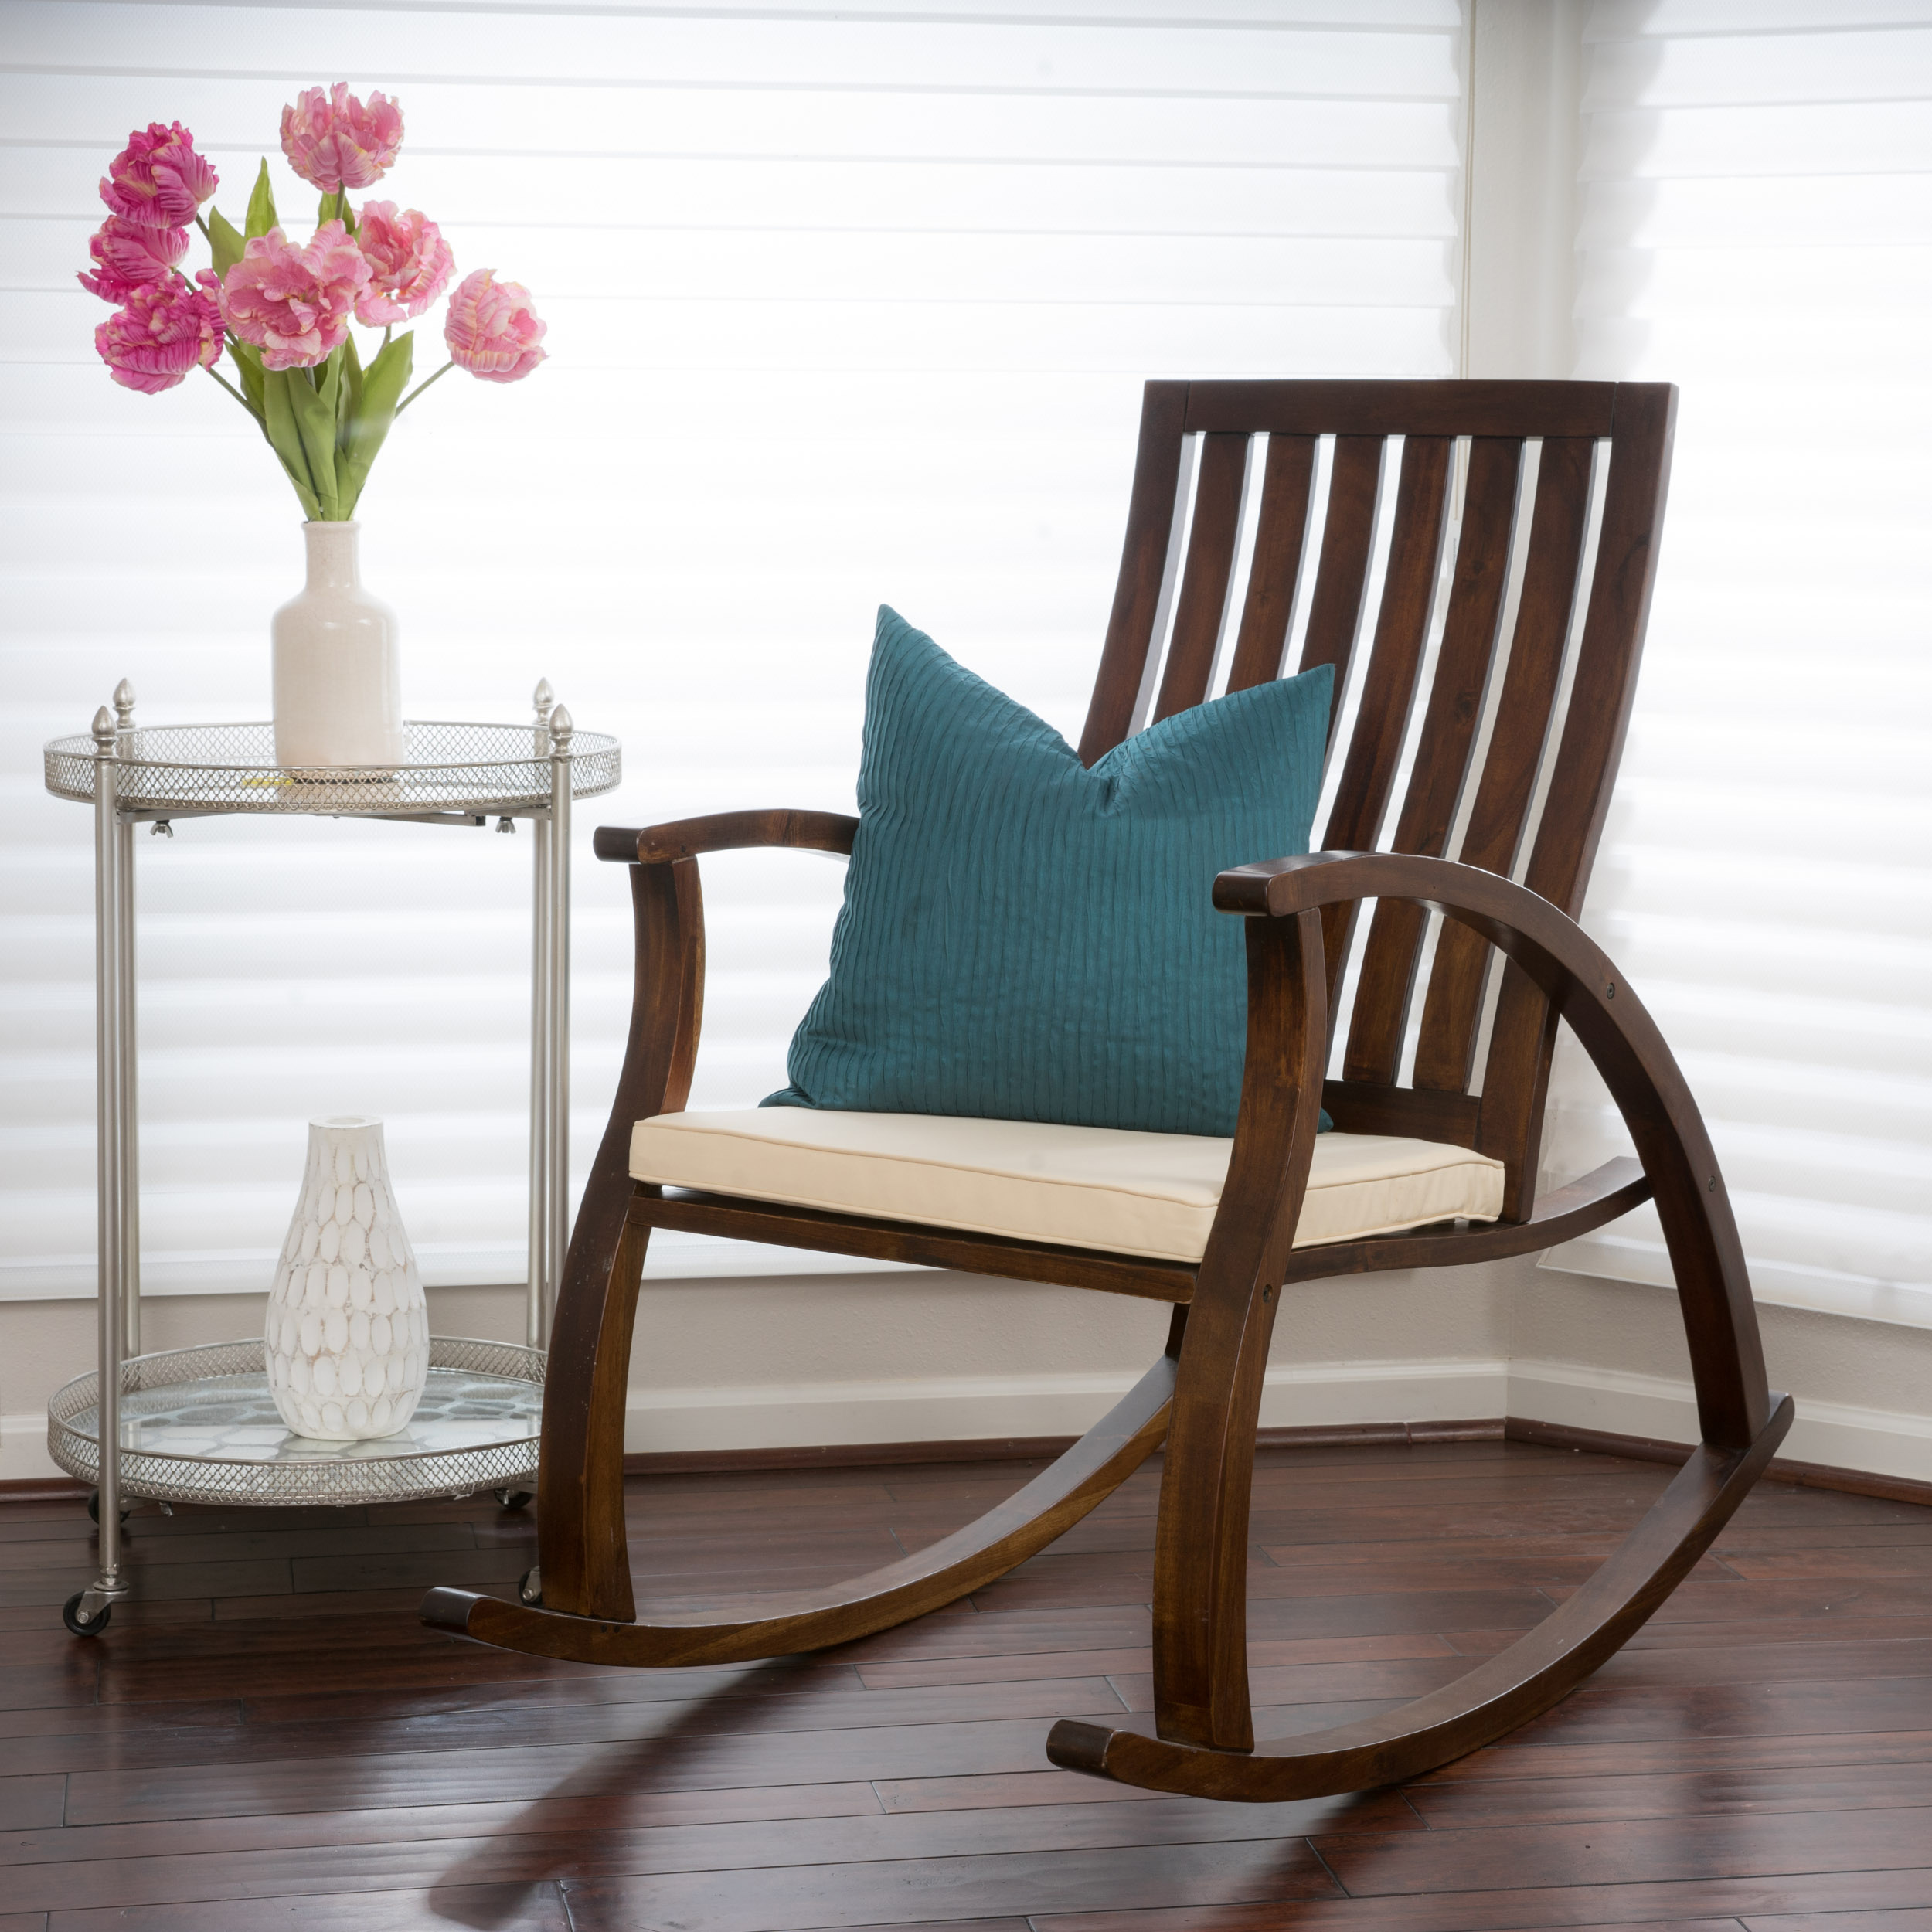 Chelsea Brown Mahogany Wood Rocking Chair With Cushion